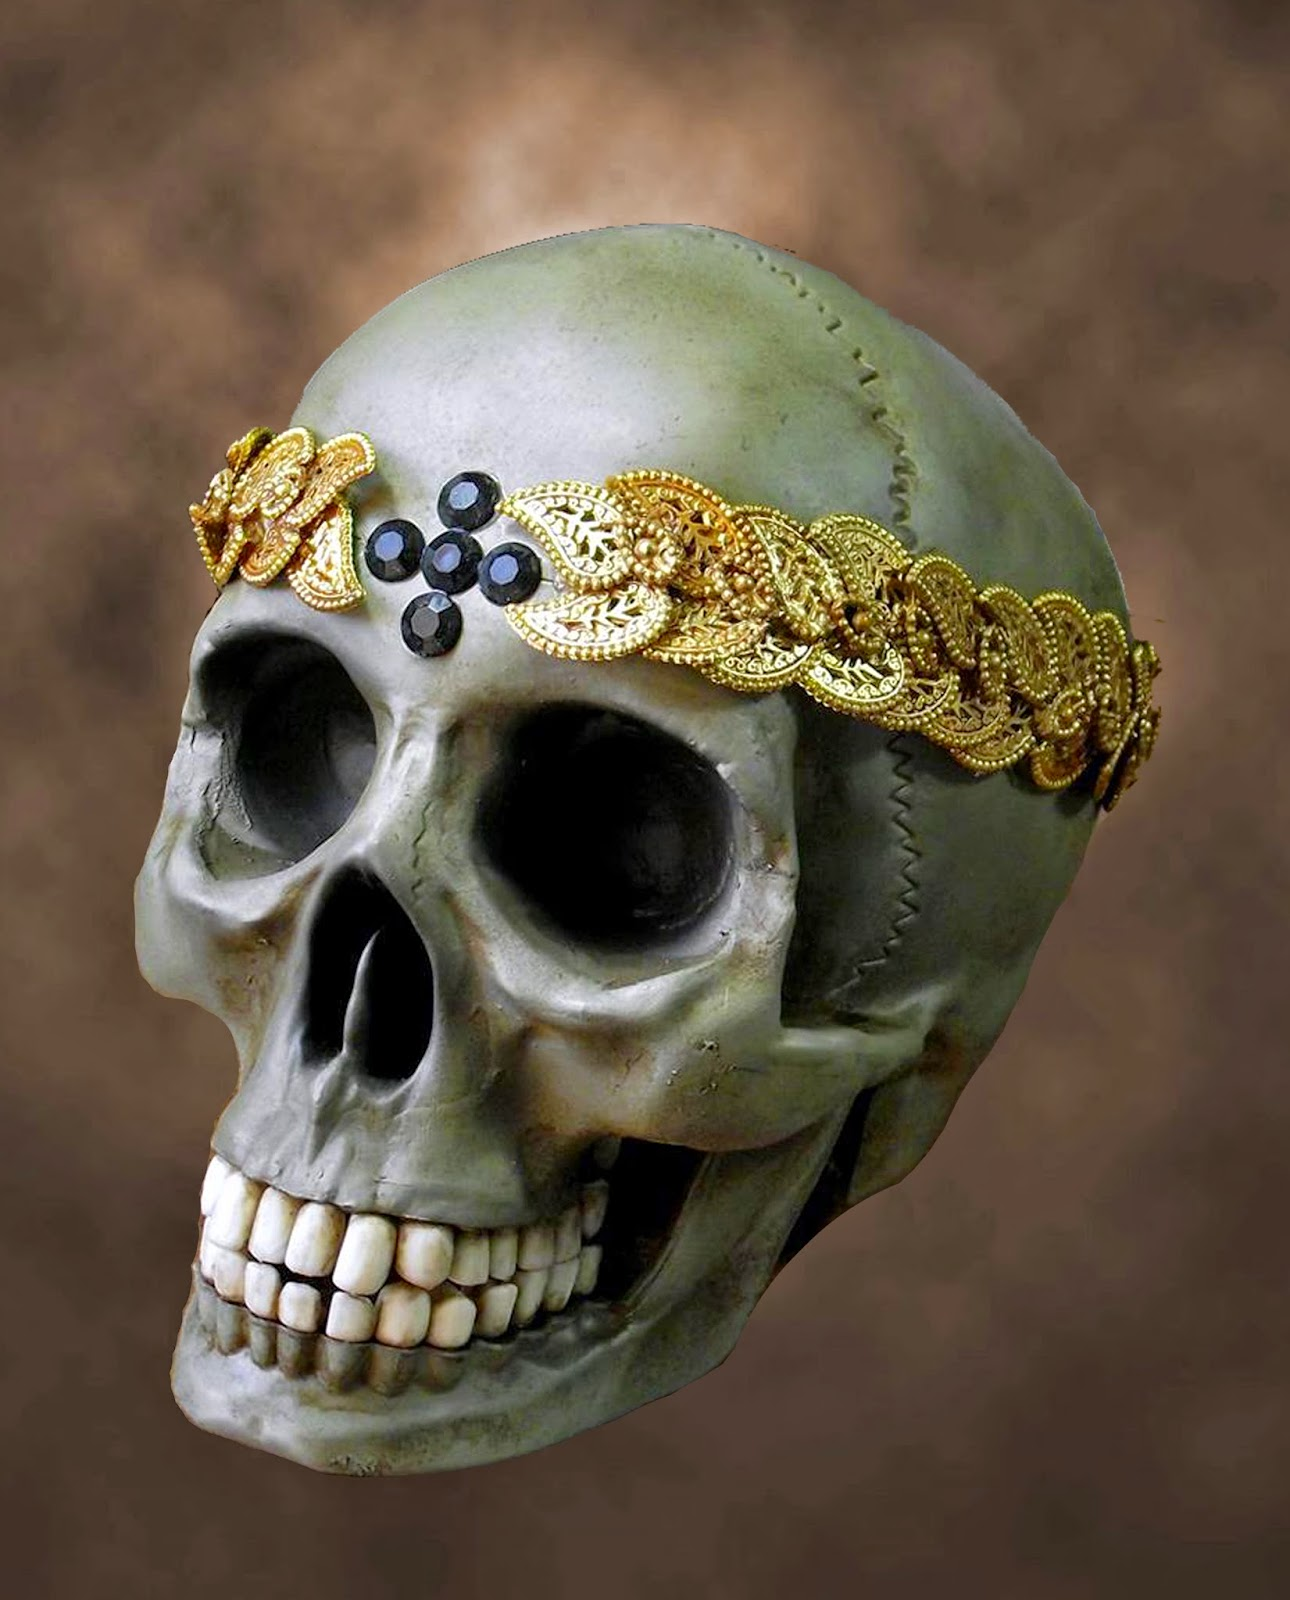 Pirate Viking Painting: Life-sized Saint's Skull